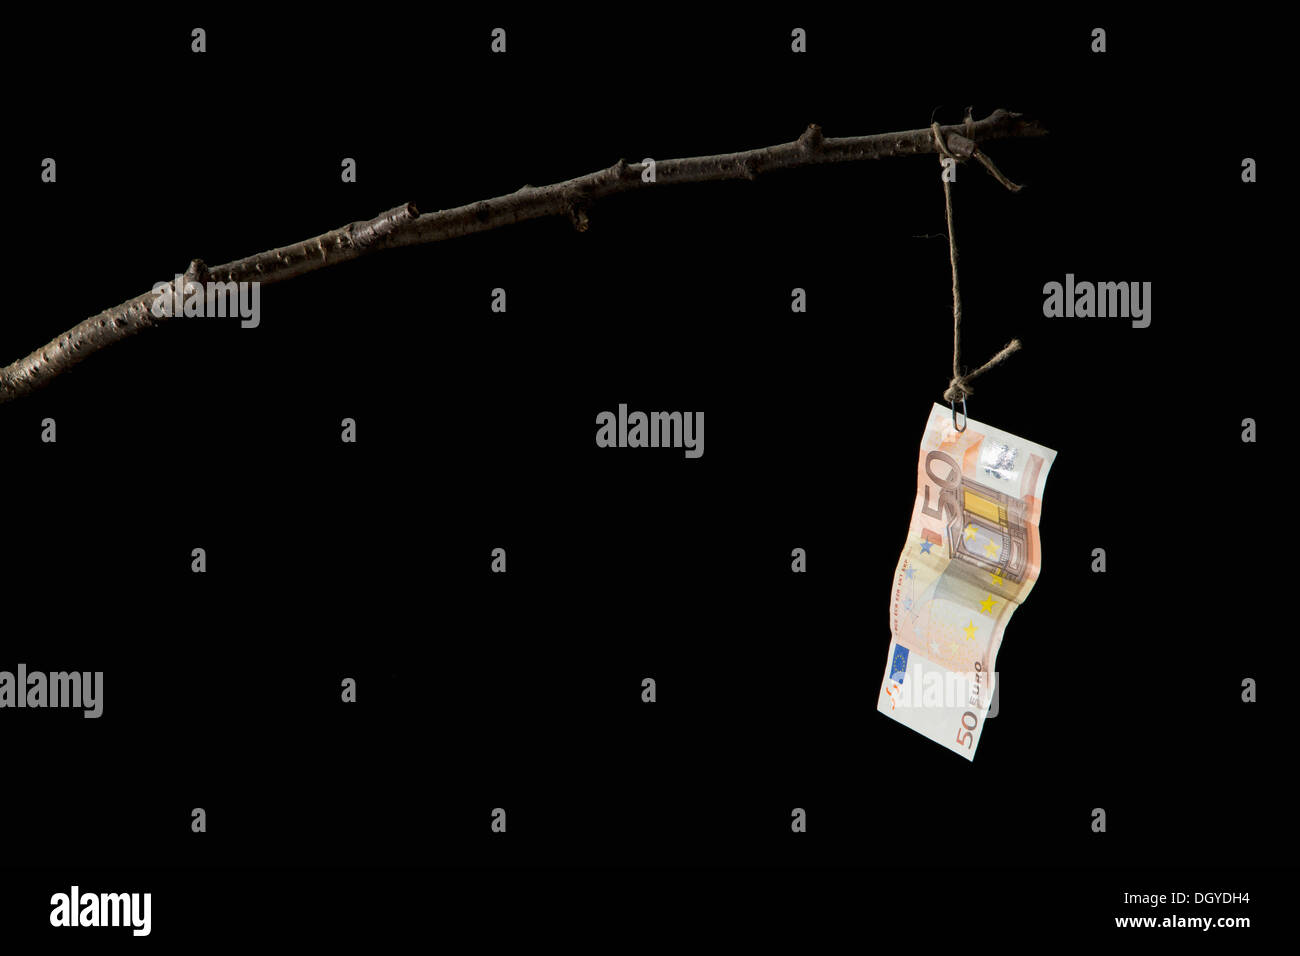 A fifty Euro banknote dangling from a crude fishing rod - Stock Image